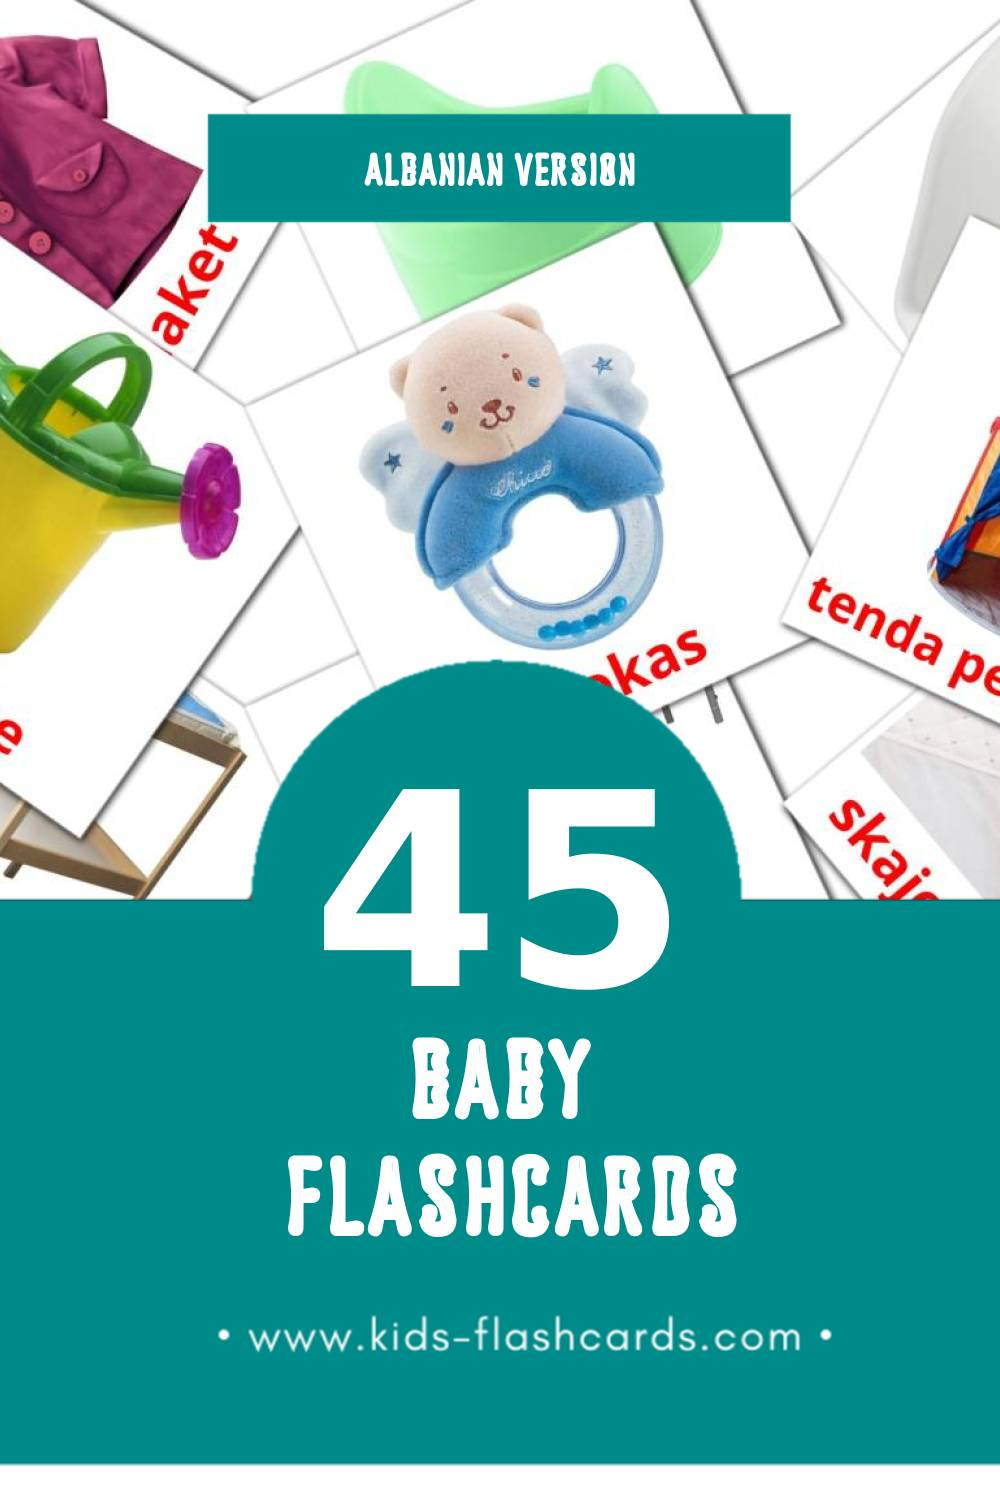 Visual rroba Flashcards for Toddlers (12 cards in Albanian)